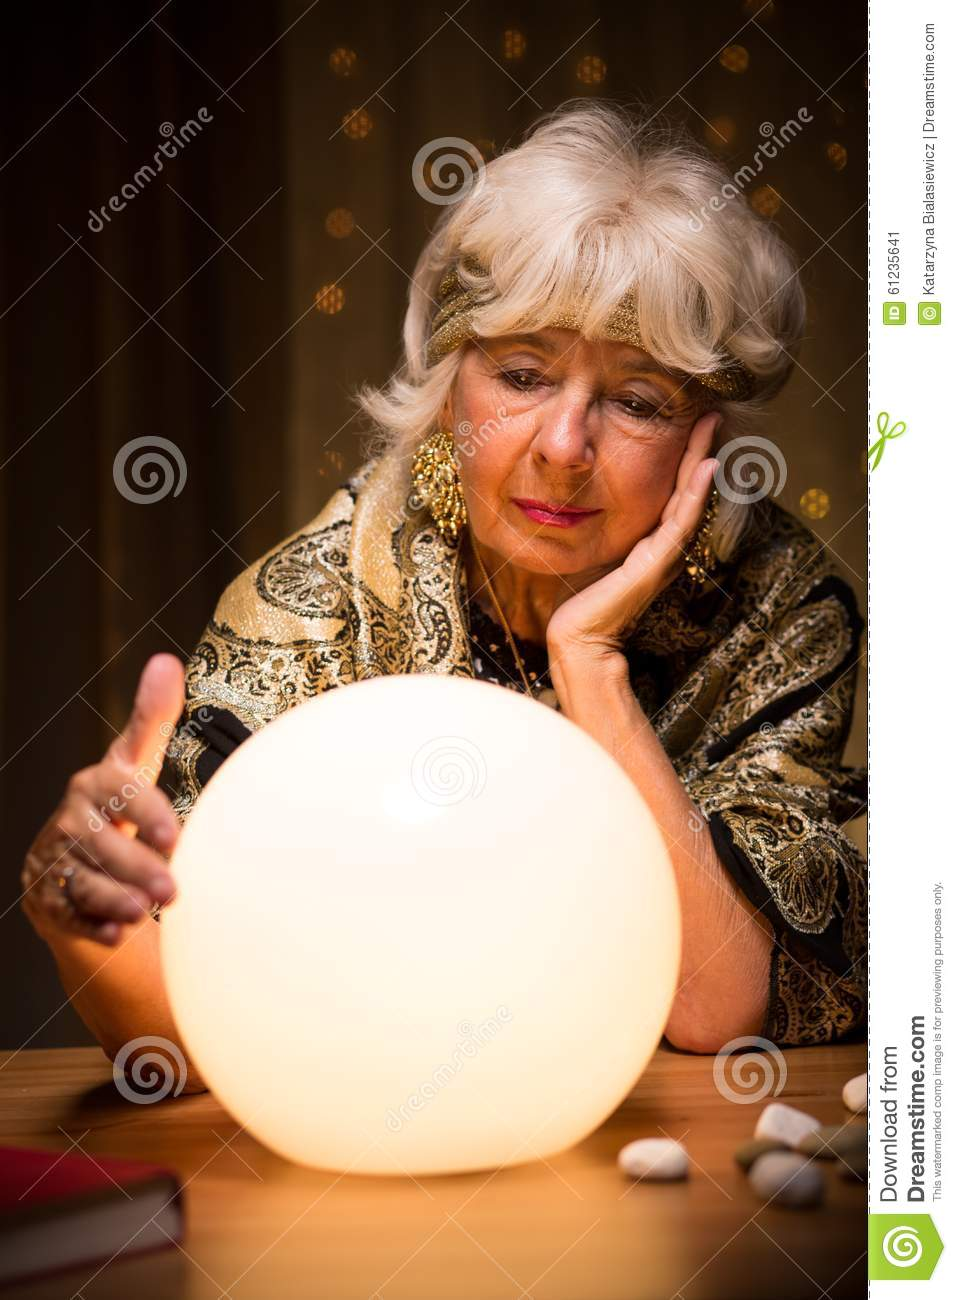 Fortune Teller With Crystal Ball Stock Photo - Image: 61235641 Crystal Ball Fortune Teller